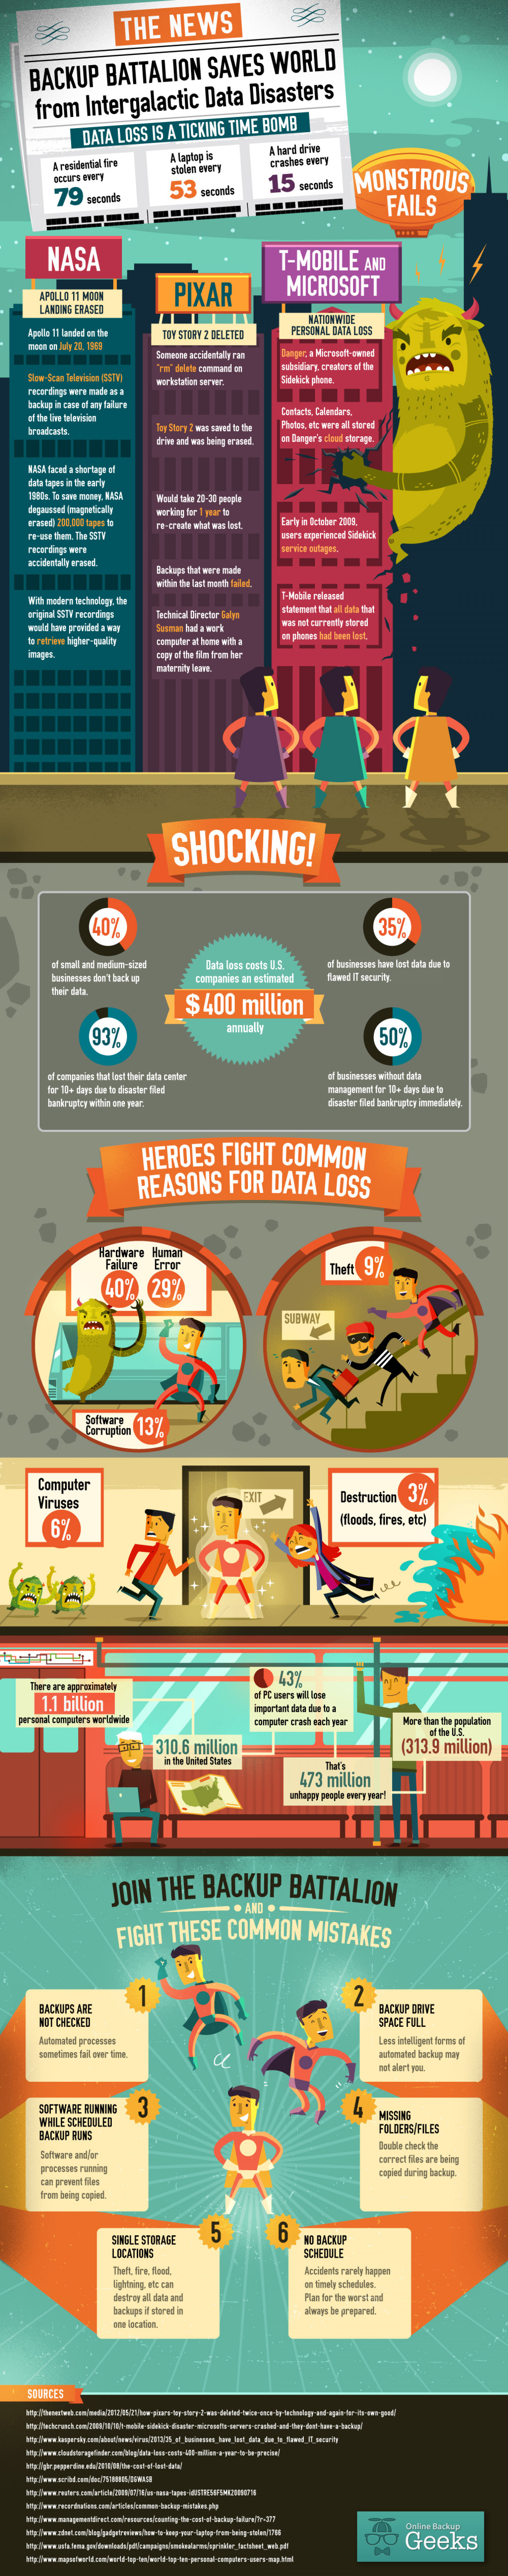 Backup Battalion Saves World from Intergalactic Data Disasters Infographic